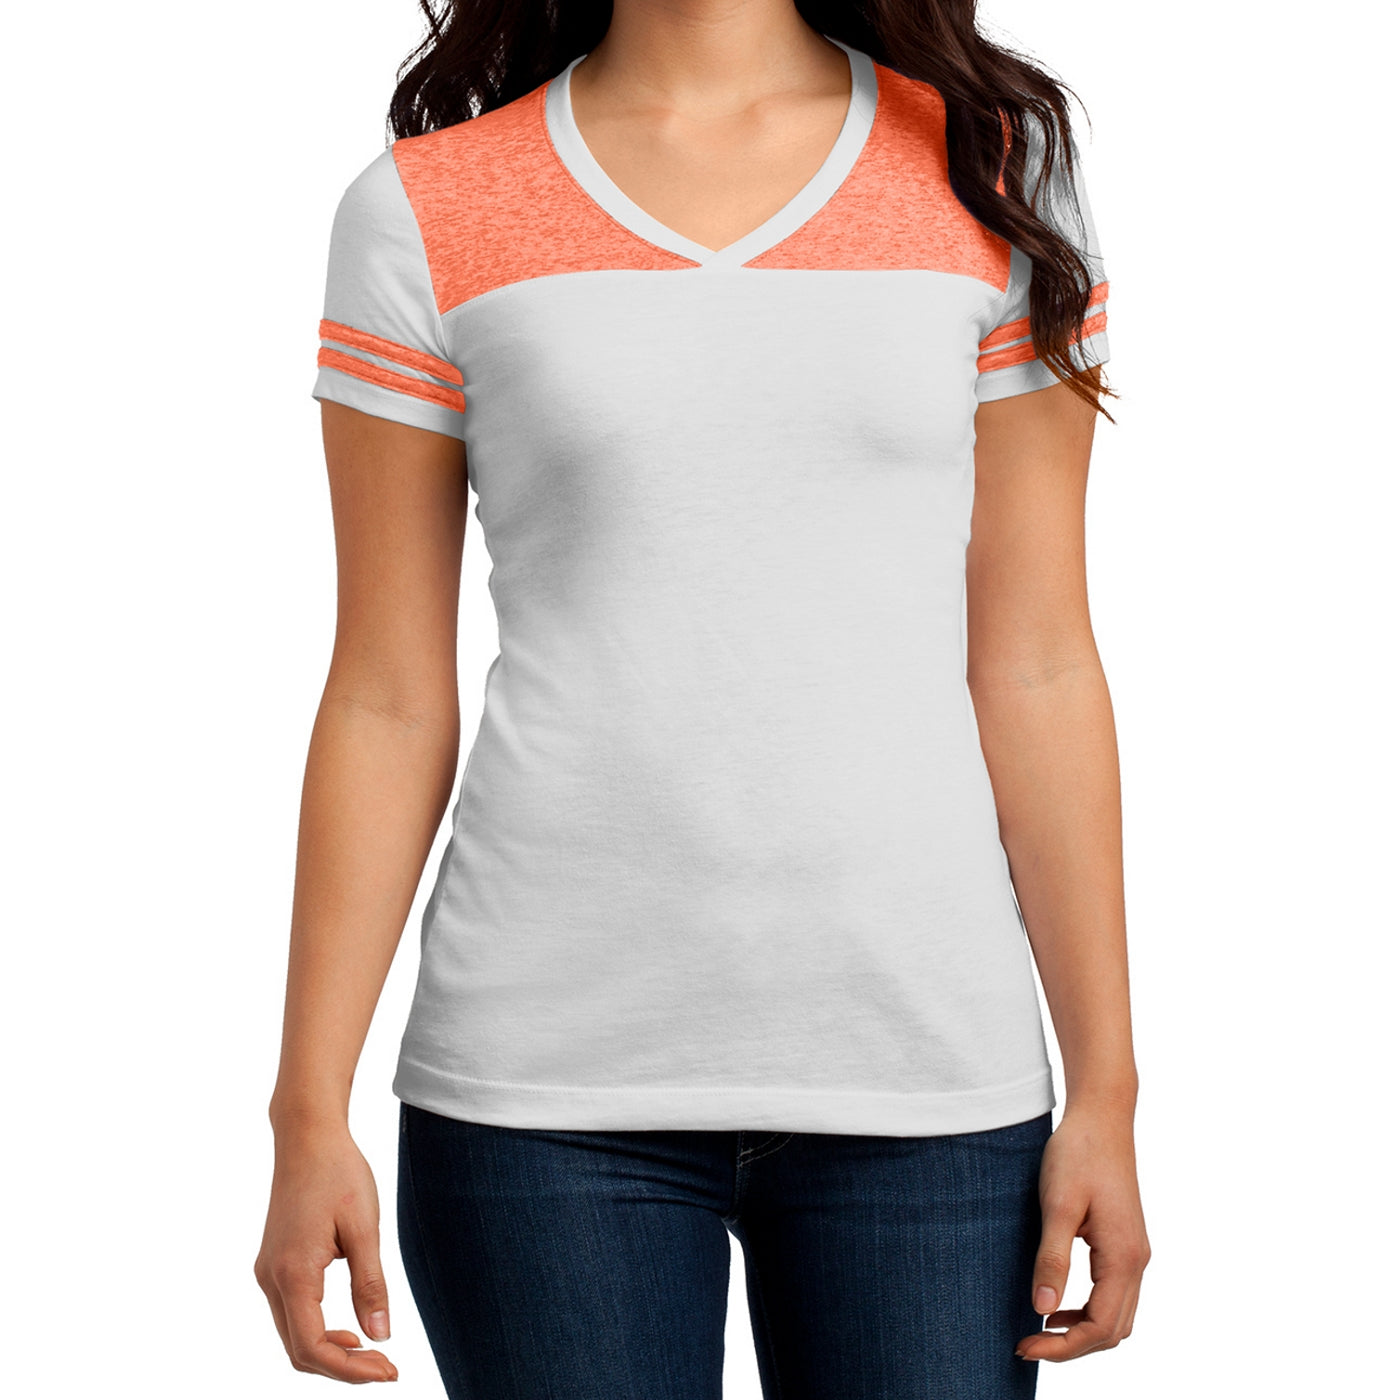 Women's Juniors Varsity V-Neck Tee - White/ Bright Orange